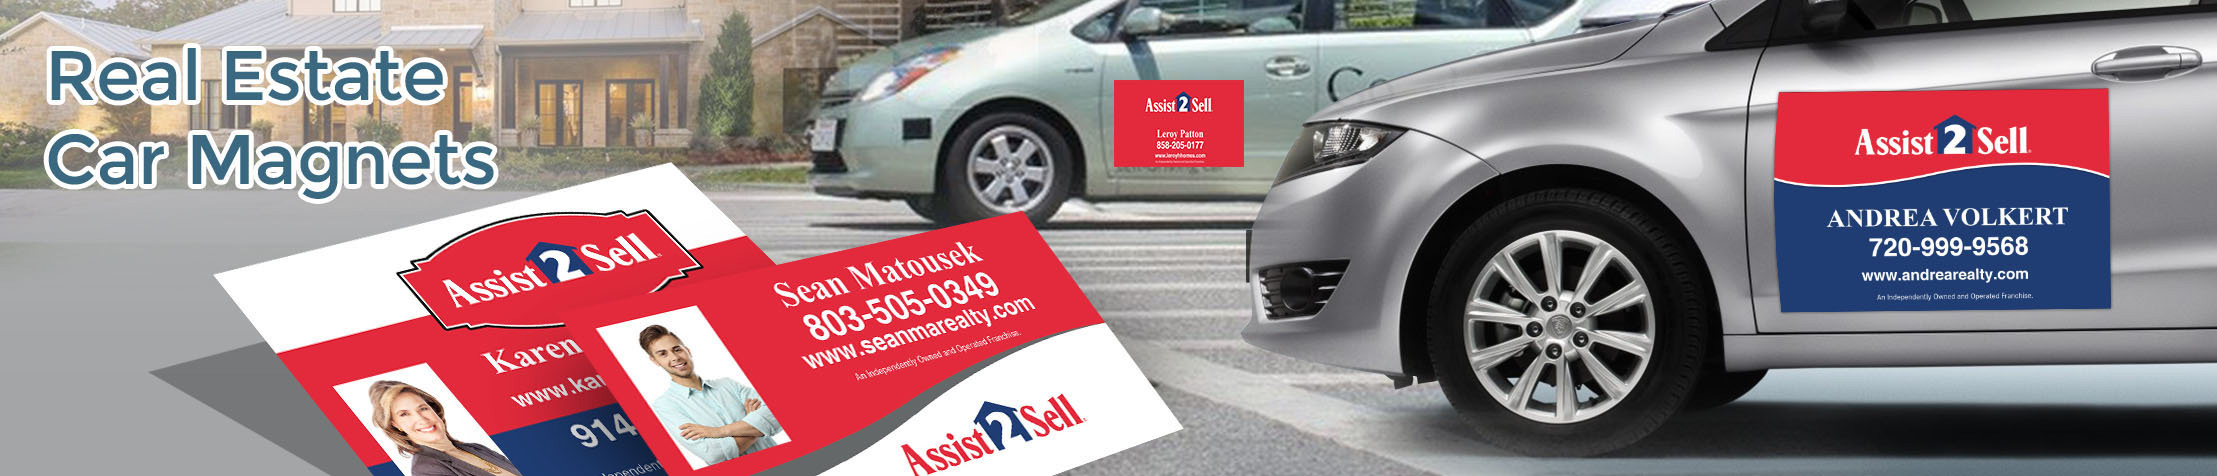 Assit2Sell Real Estate  Car Magnets - Assit2Sell Real Estate custom car magnets for realtors, with or without photo | BestPrintBuy.com